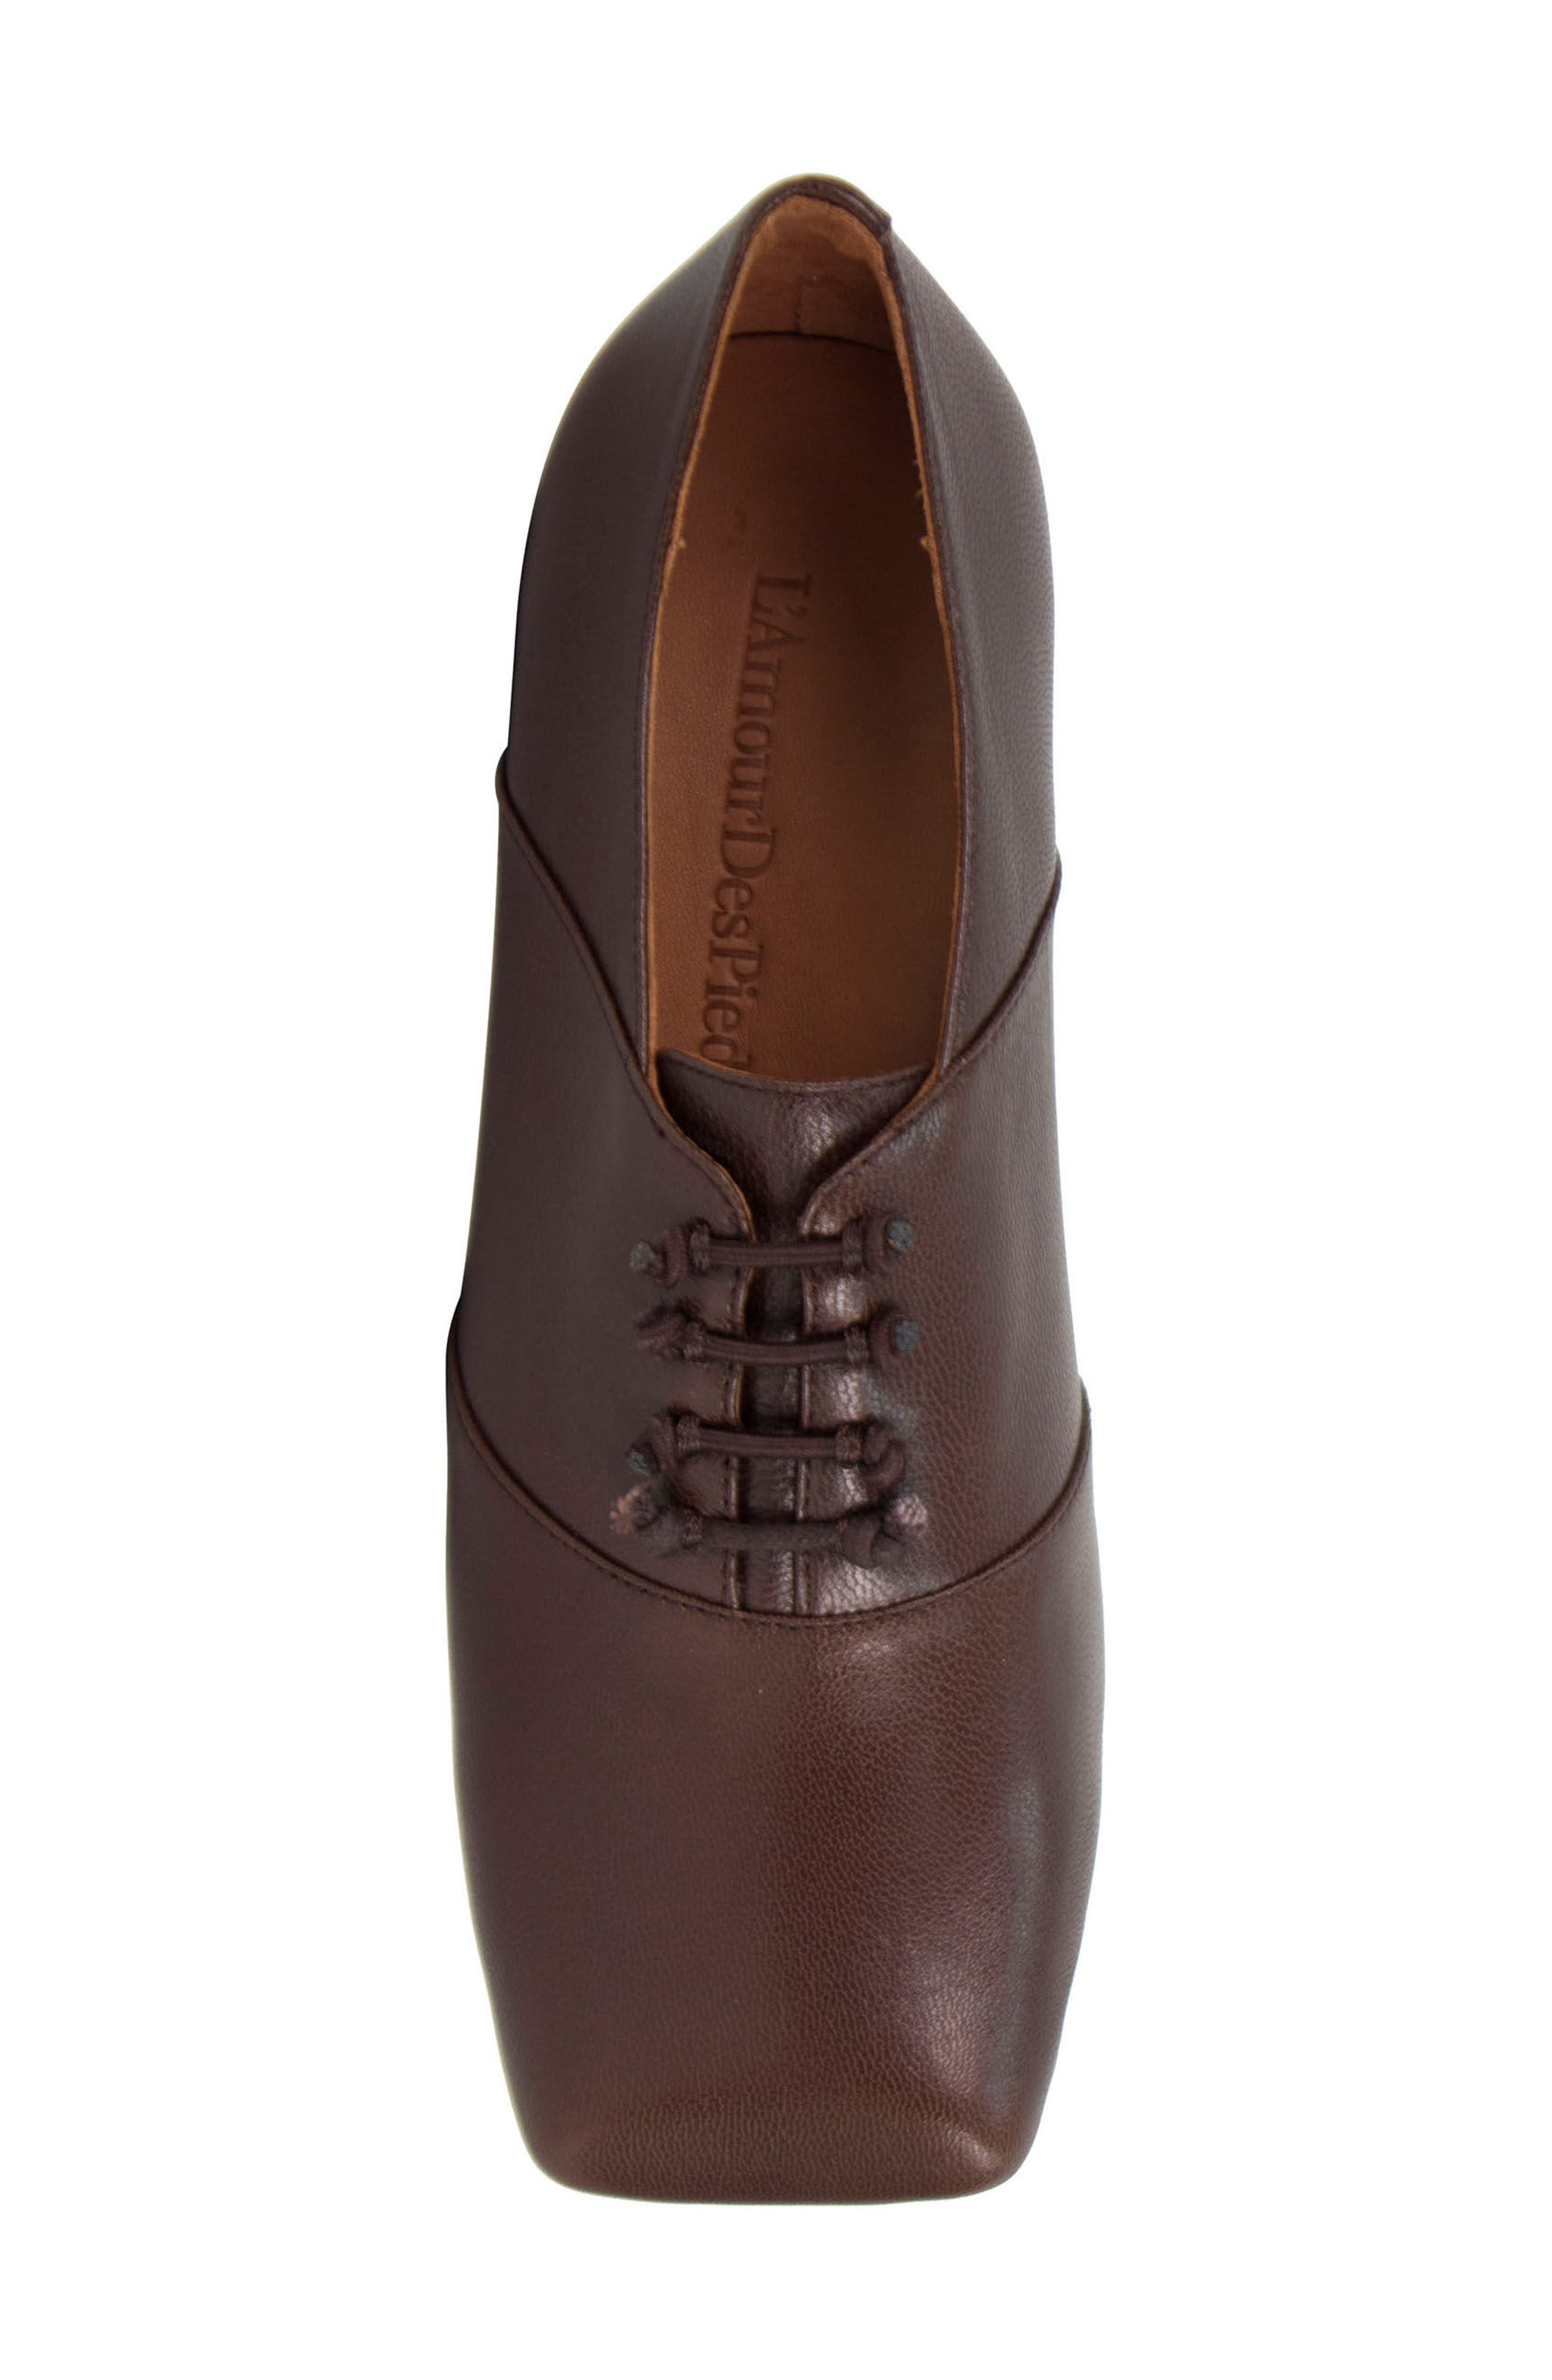 Winifred Lace-Up Bootie,                             Alternate thumbnail 5, color,                             Moro Leather